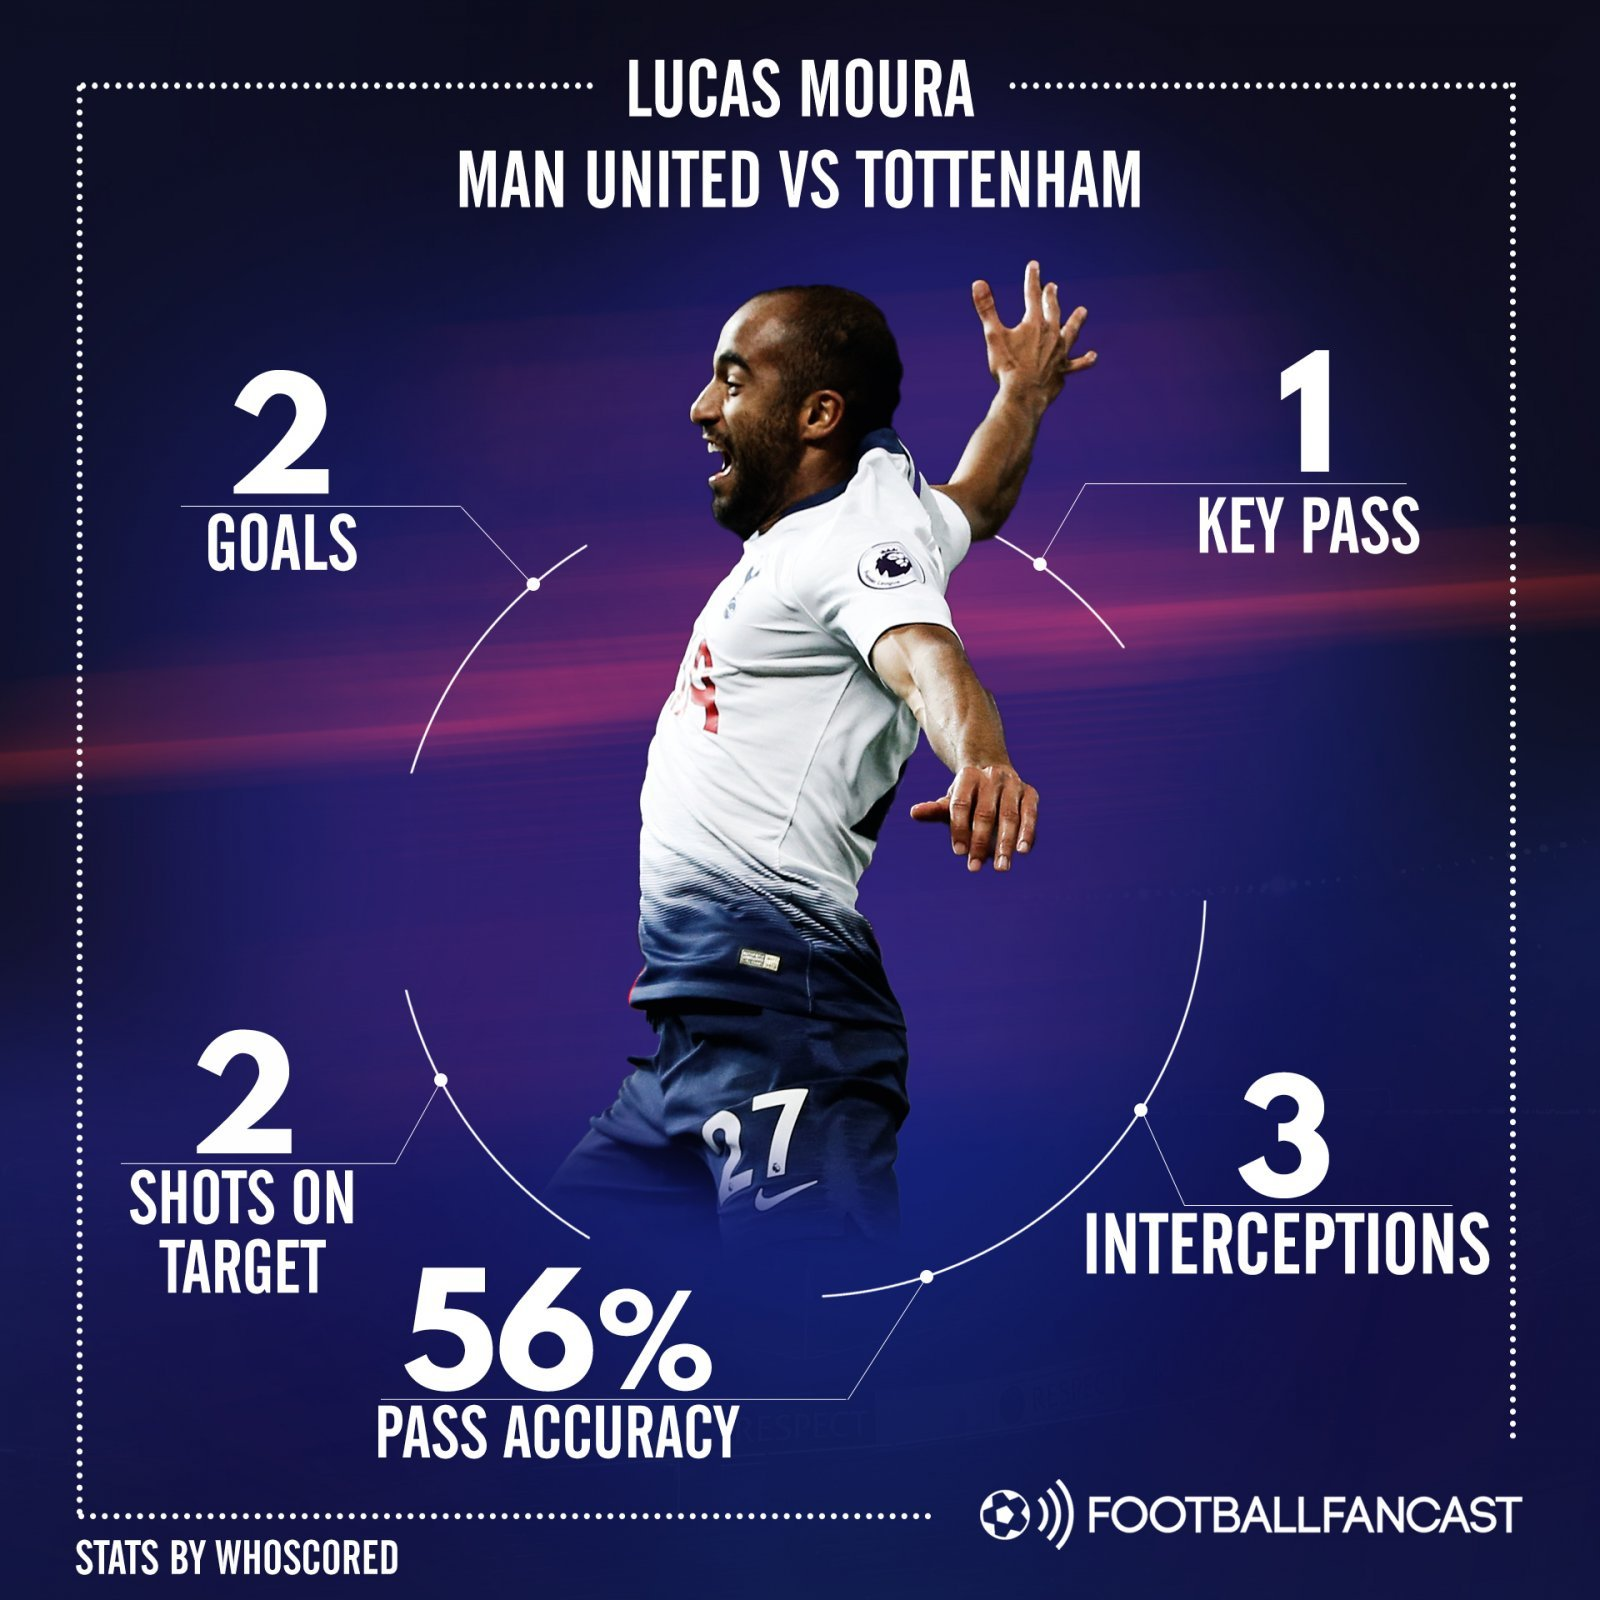 Paris Saint Germain S Lucas Moura Arrives For Tottenham: 1 Key Pass, 3 Interceptions: Spurs' Prayers Answered By 26